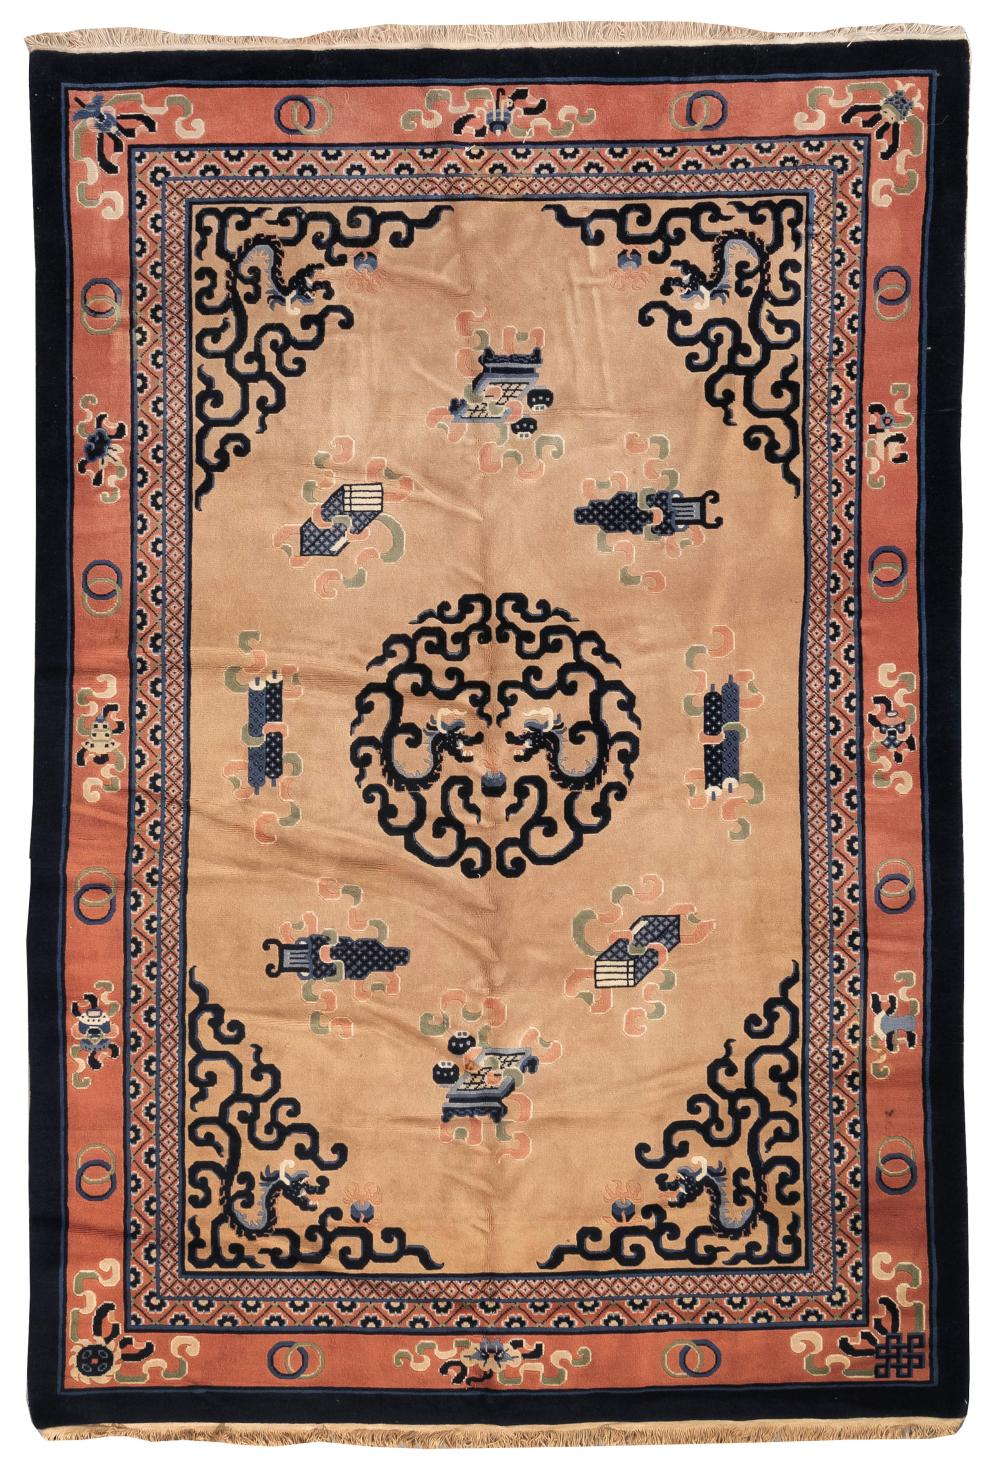 "Lot 1126: ORIENTAL RUG: CHINESE 6'0"" x 9'0"" Central medallion composed of two dark blue dragons chasing a pearl. Tan field with clouds and sym."